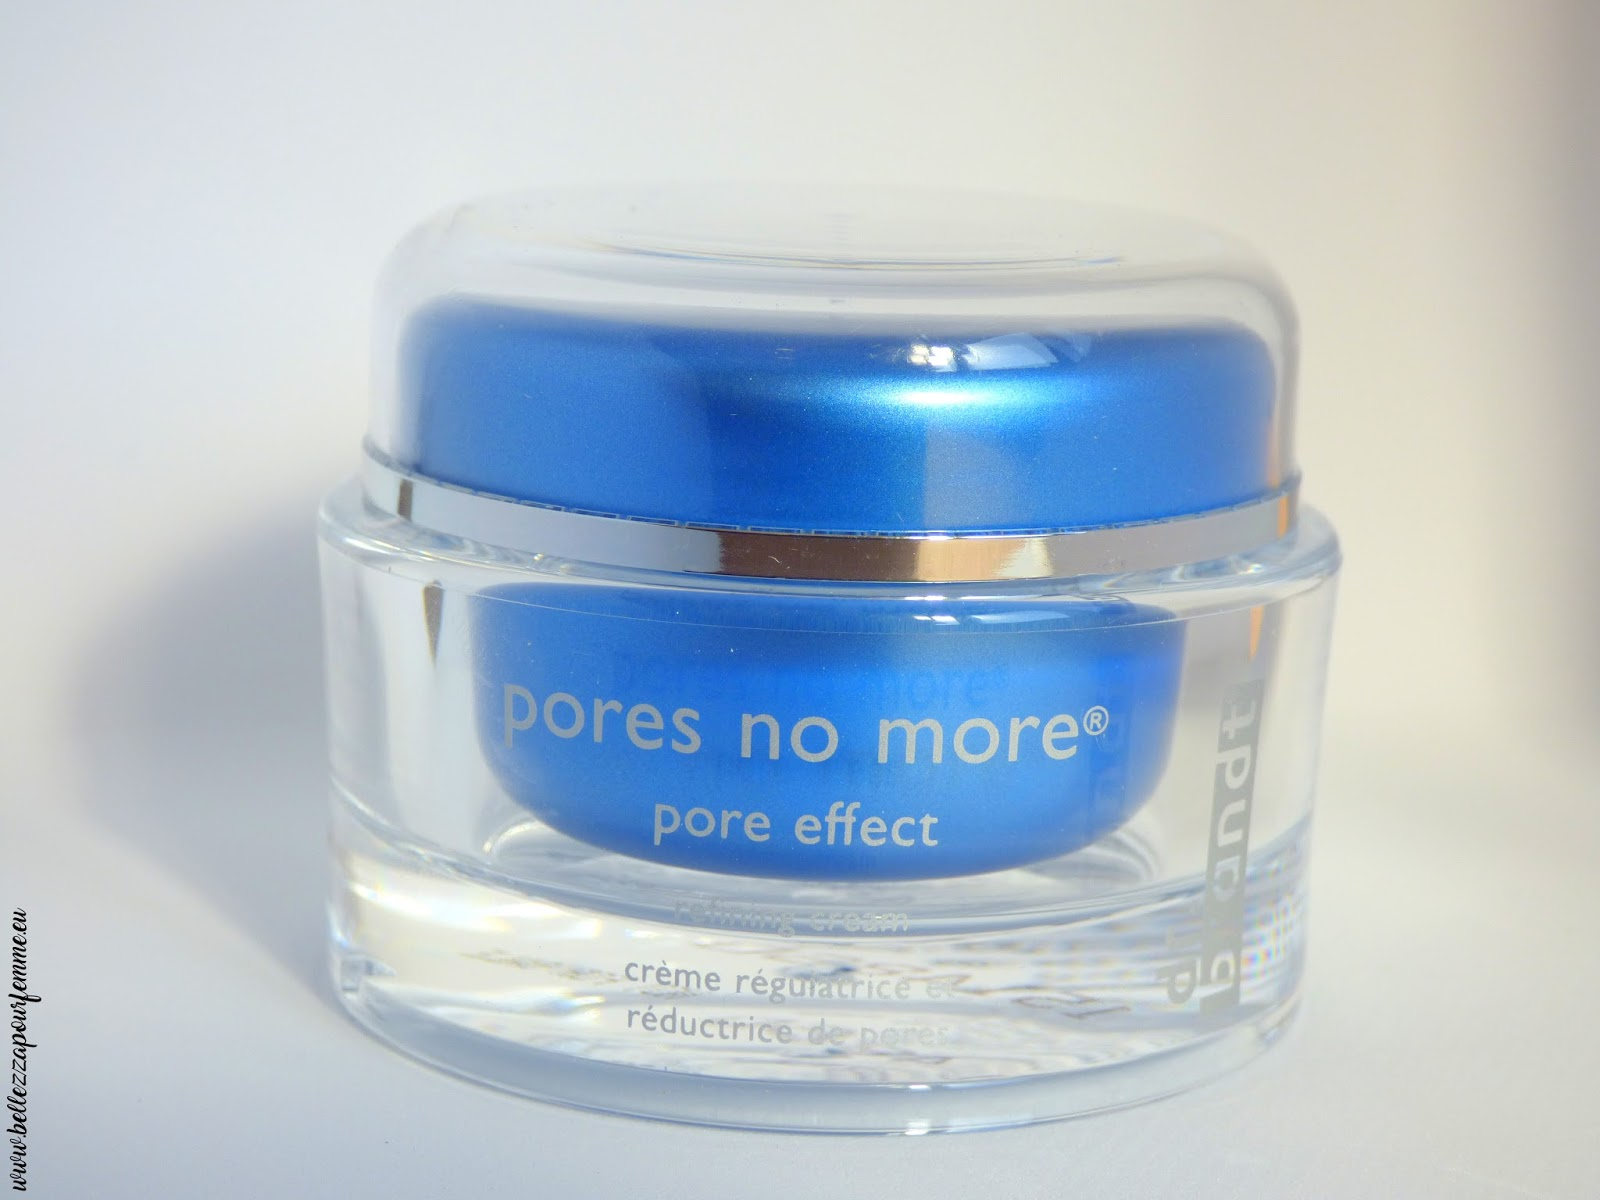 DR. BRANDT SKINCARE Pores No More® Pore Effect